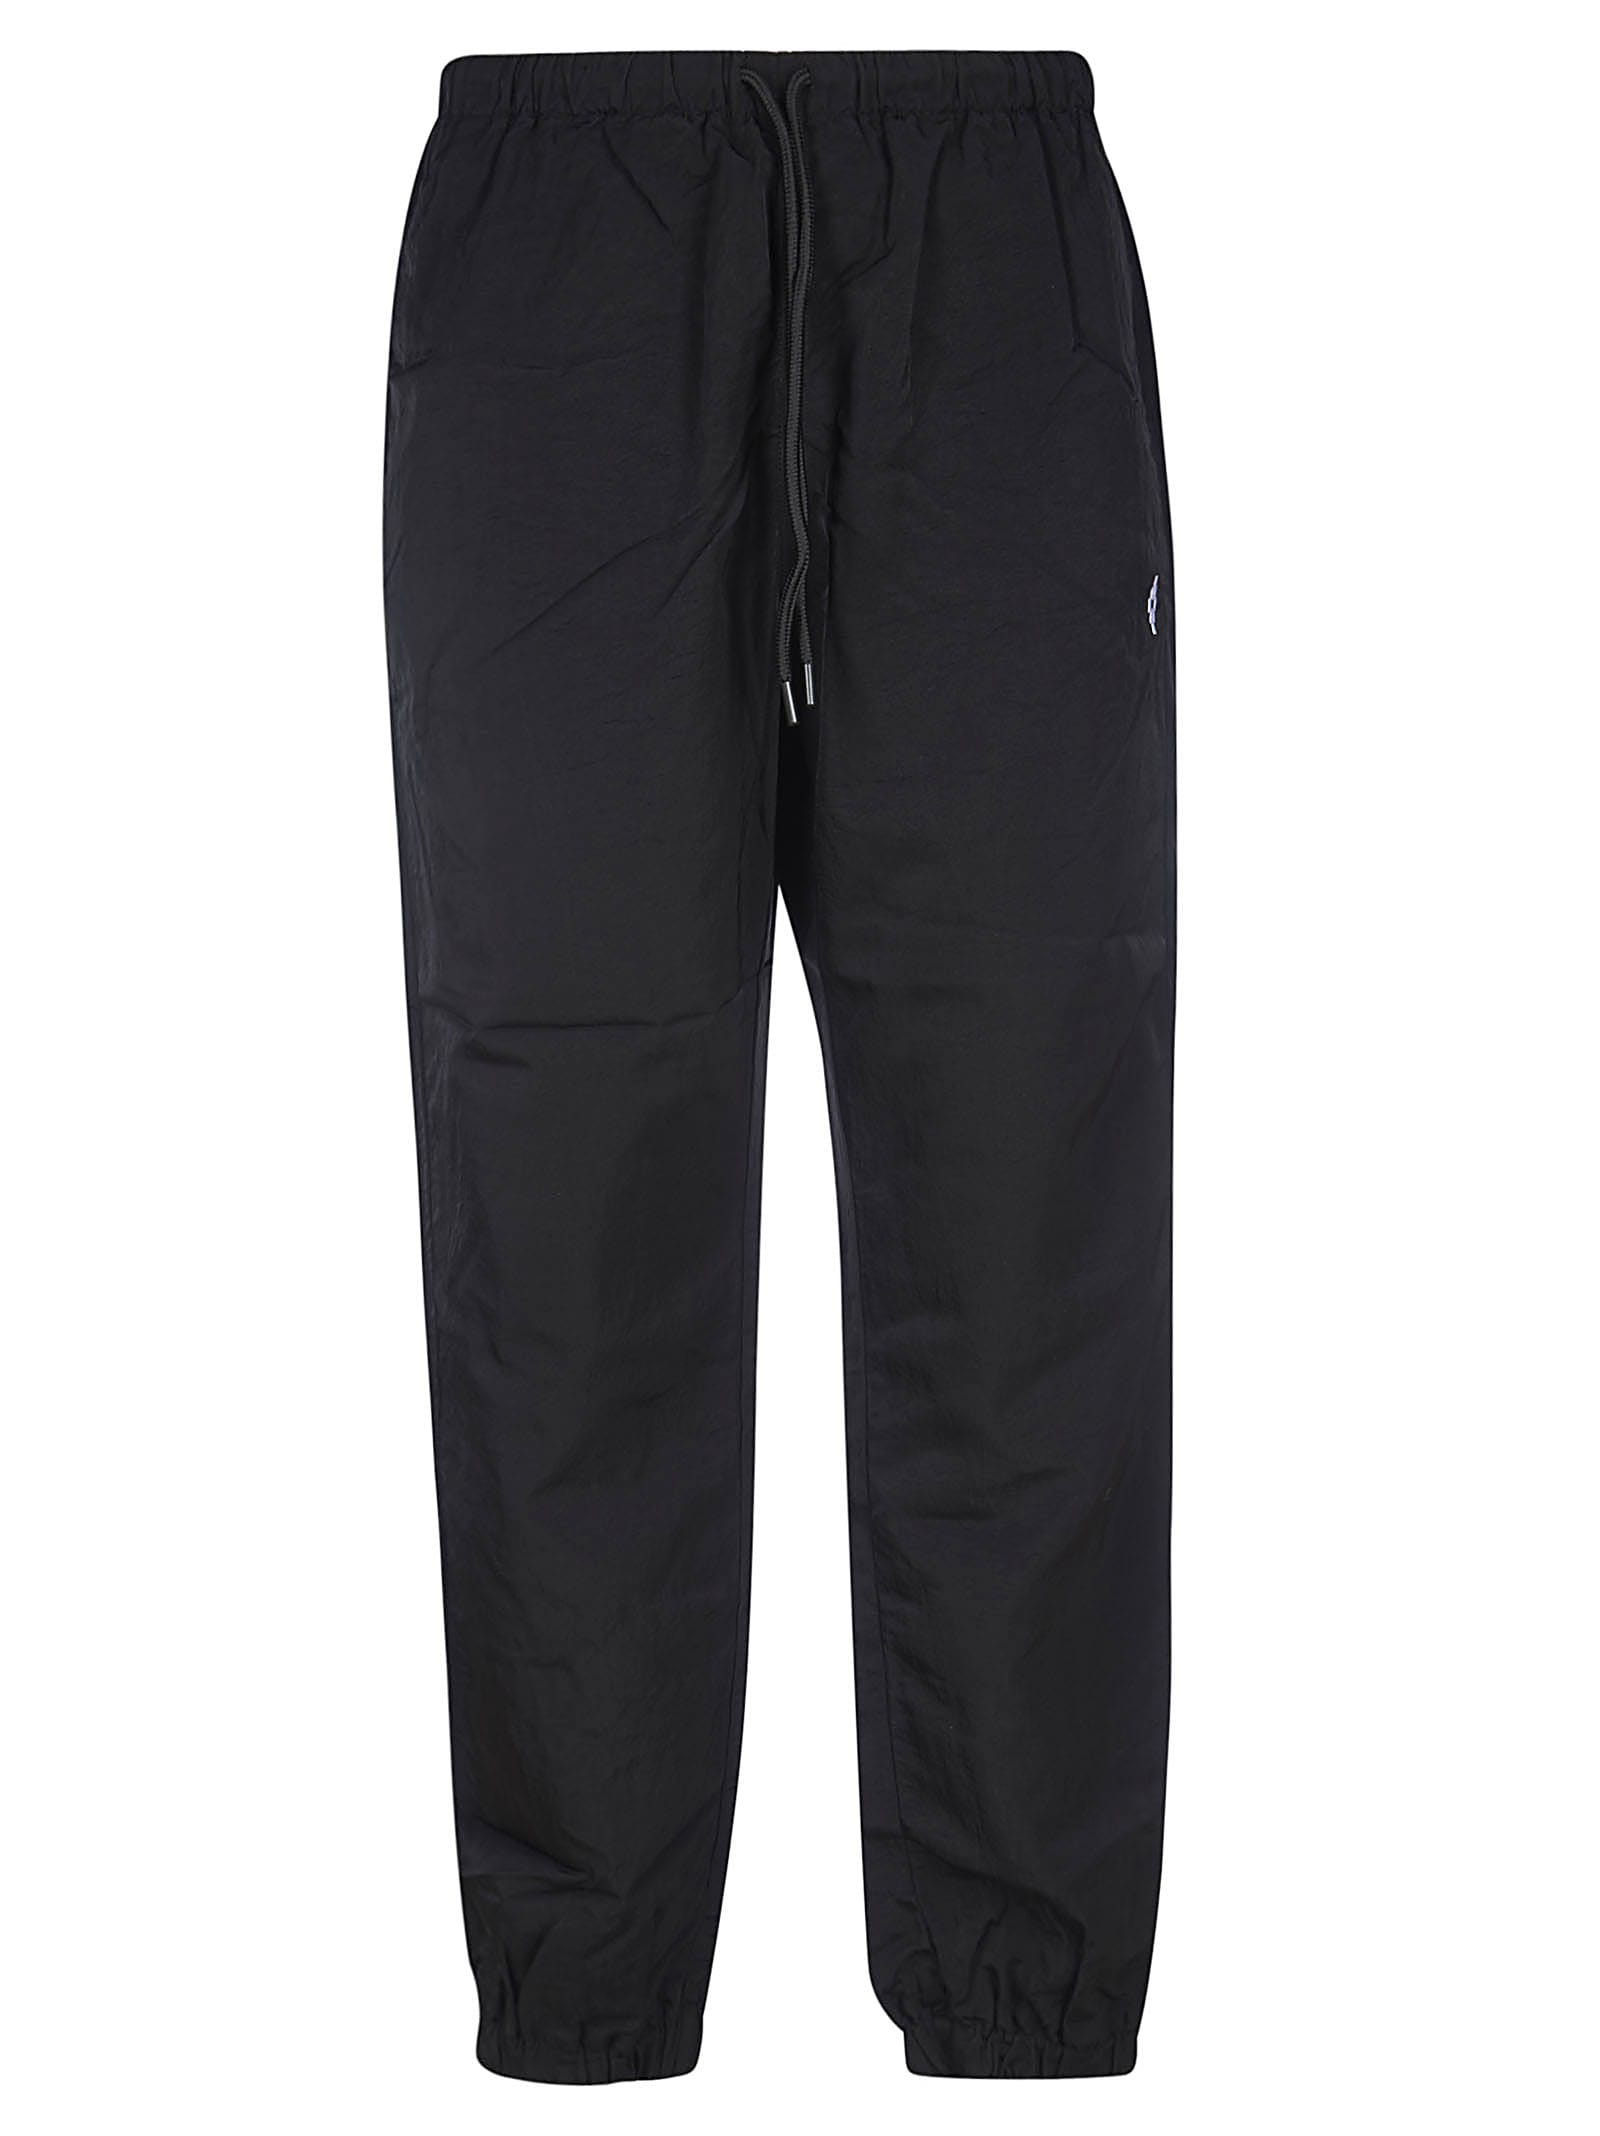 Marcelo Burlon Cross Track Pants